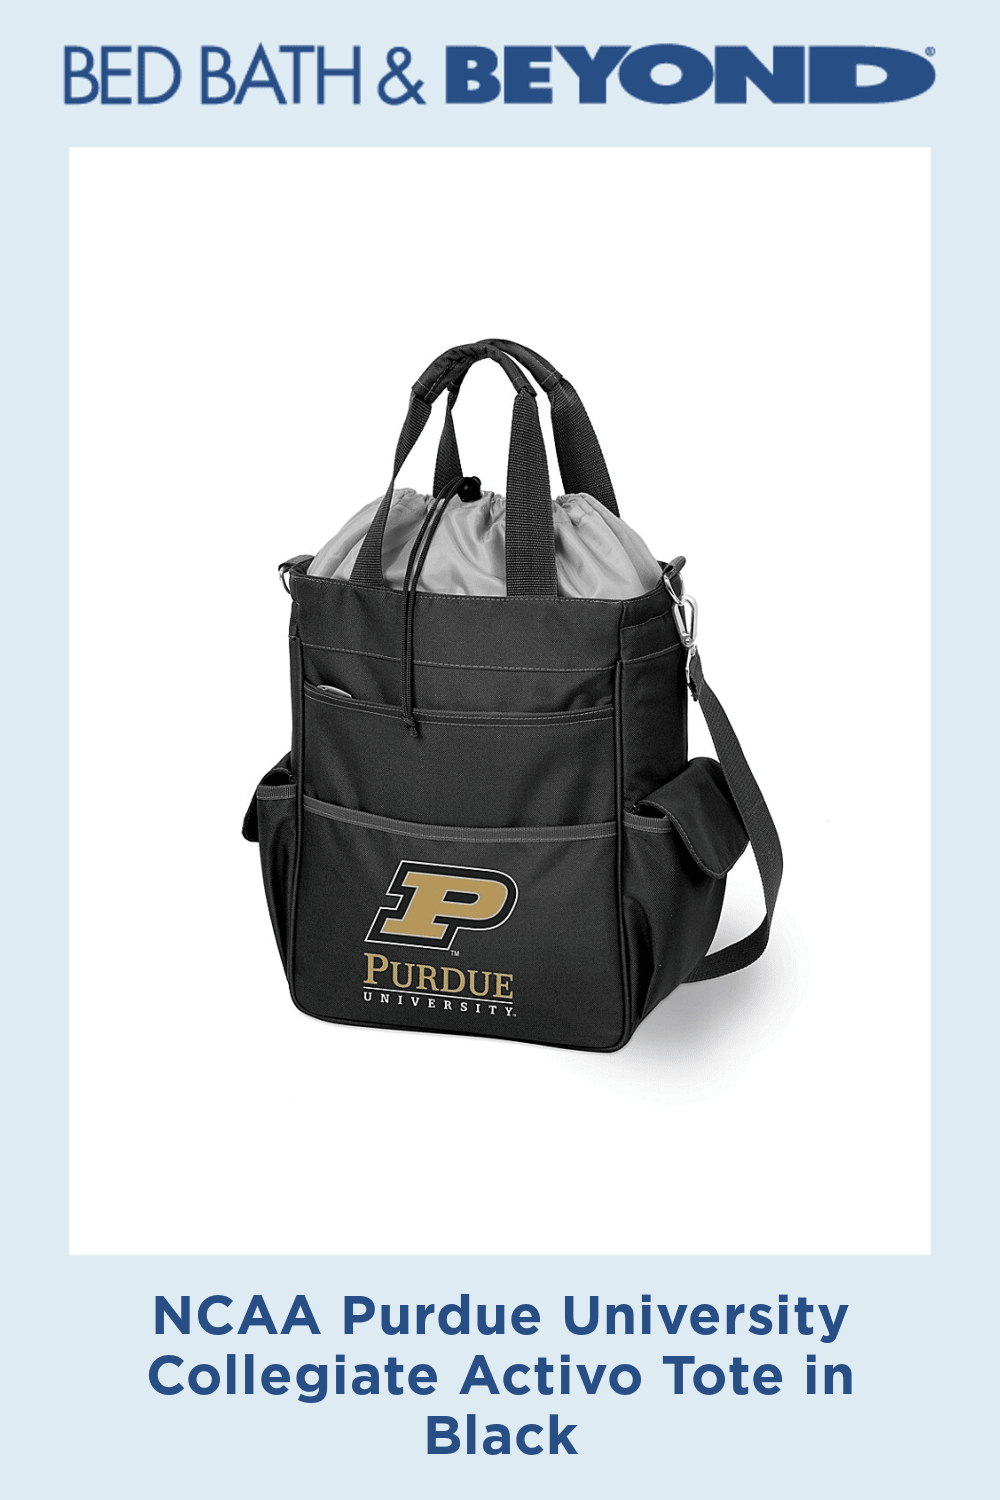 NCAA Purdue University Collegiate Activo Tote in Black - NCAA Activo Totes are waterproof and feature a fully insulated compartment to provide plenty of room for food and drinks. Activo totes are ideal for the beach, sporting events, or long trips in the car.